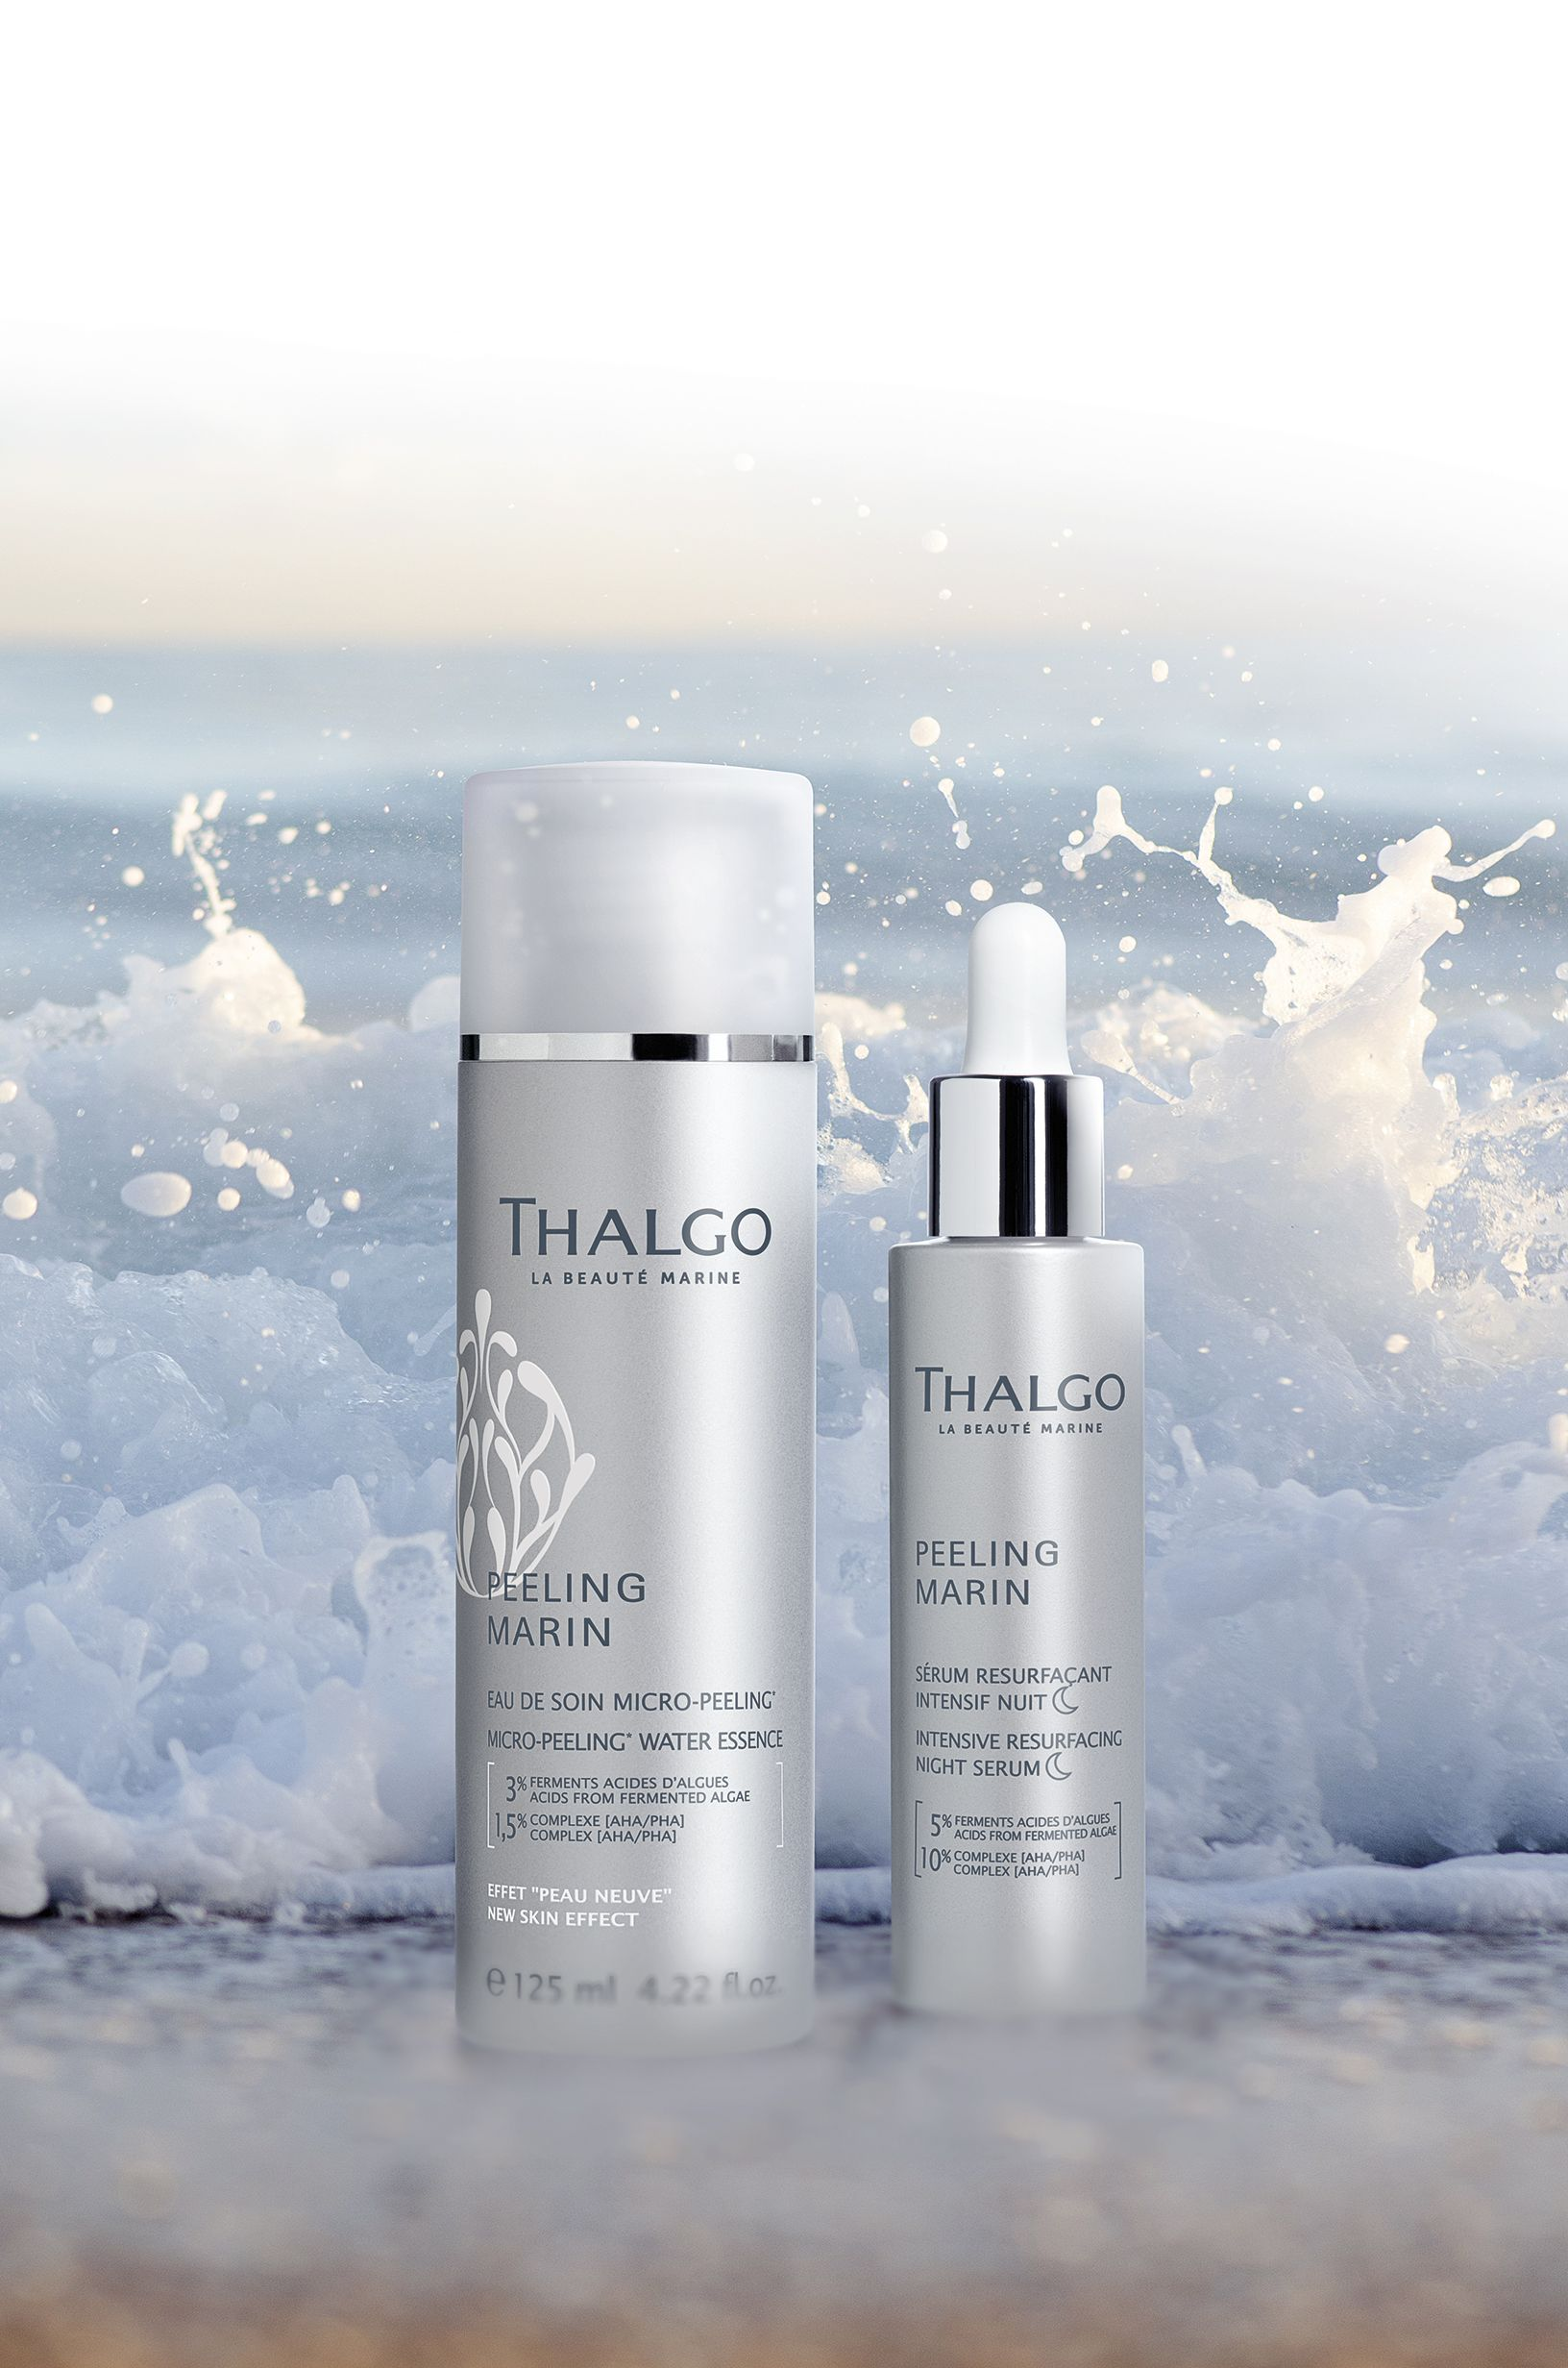 Inspired by dermatology, the Thalgo Laboratories have